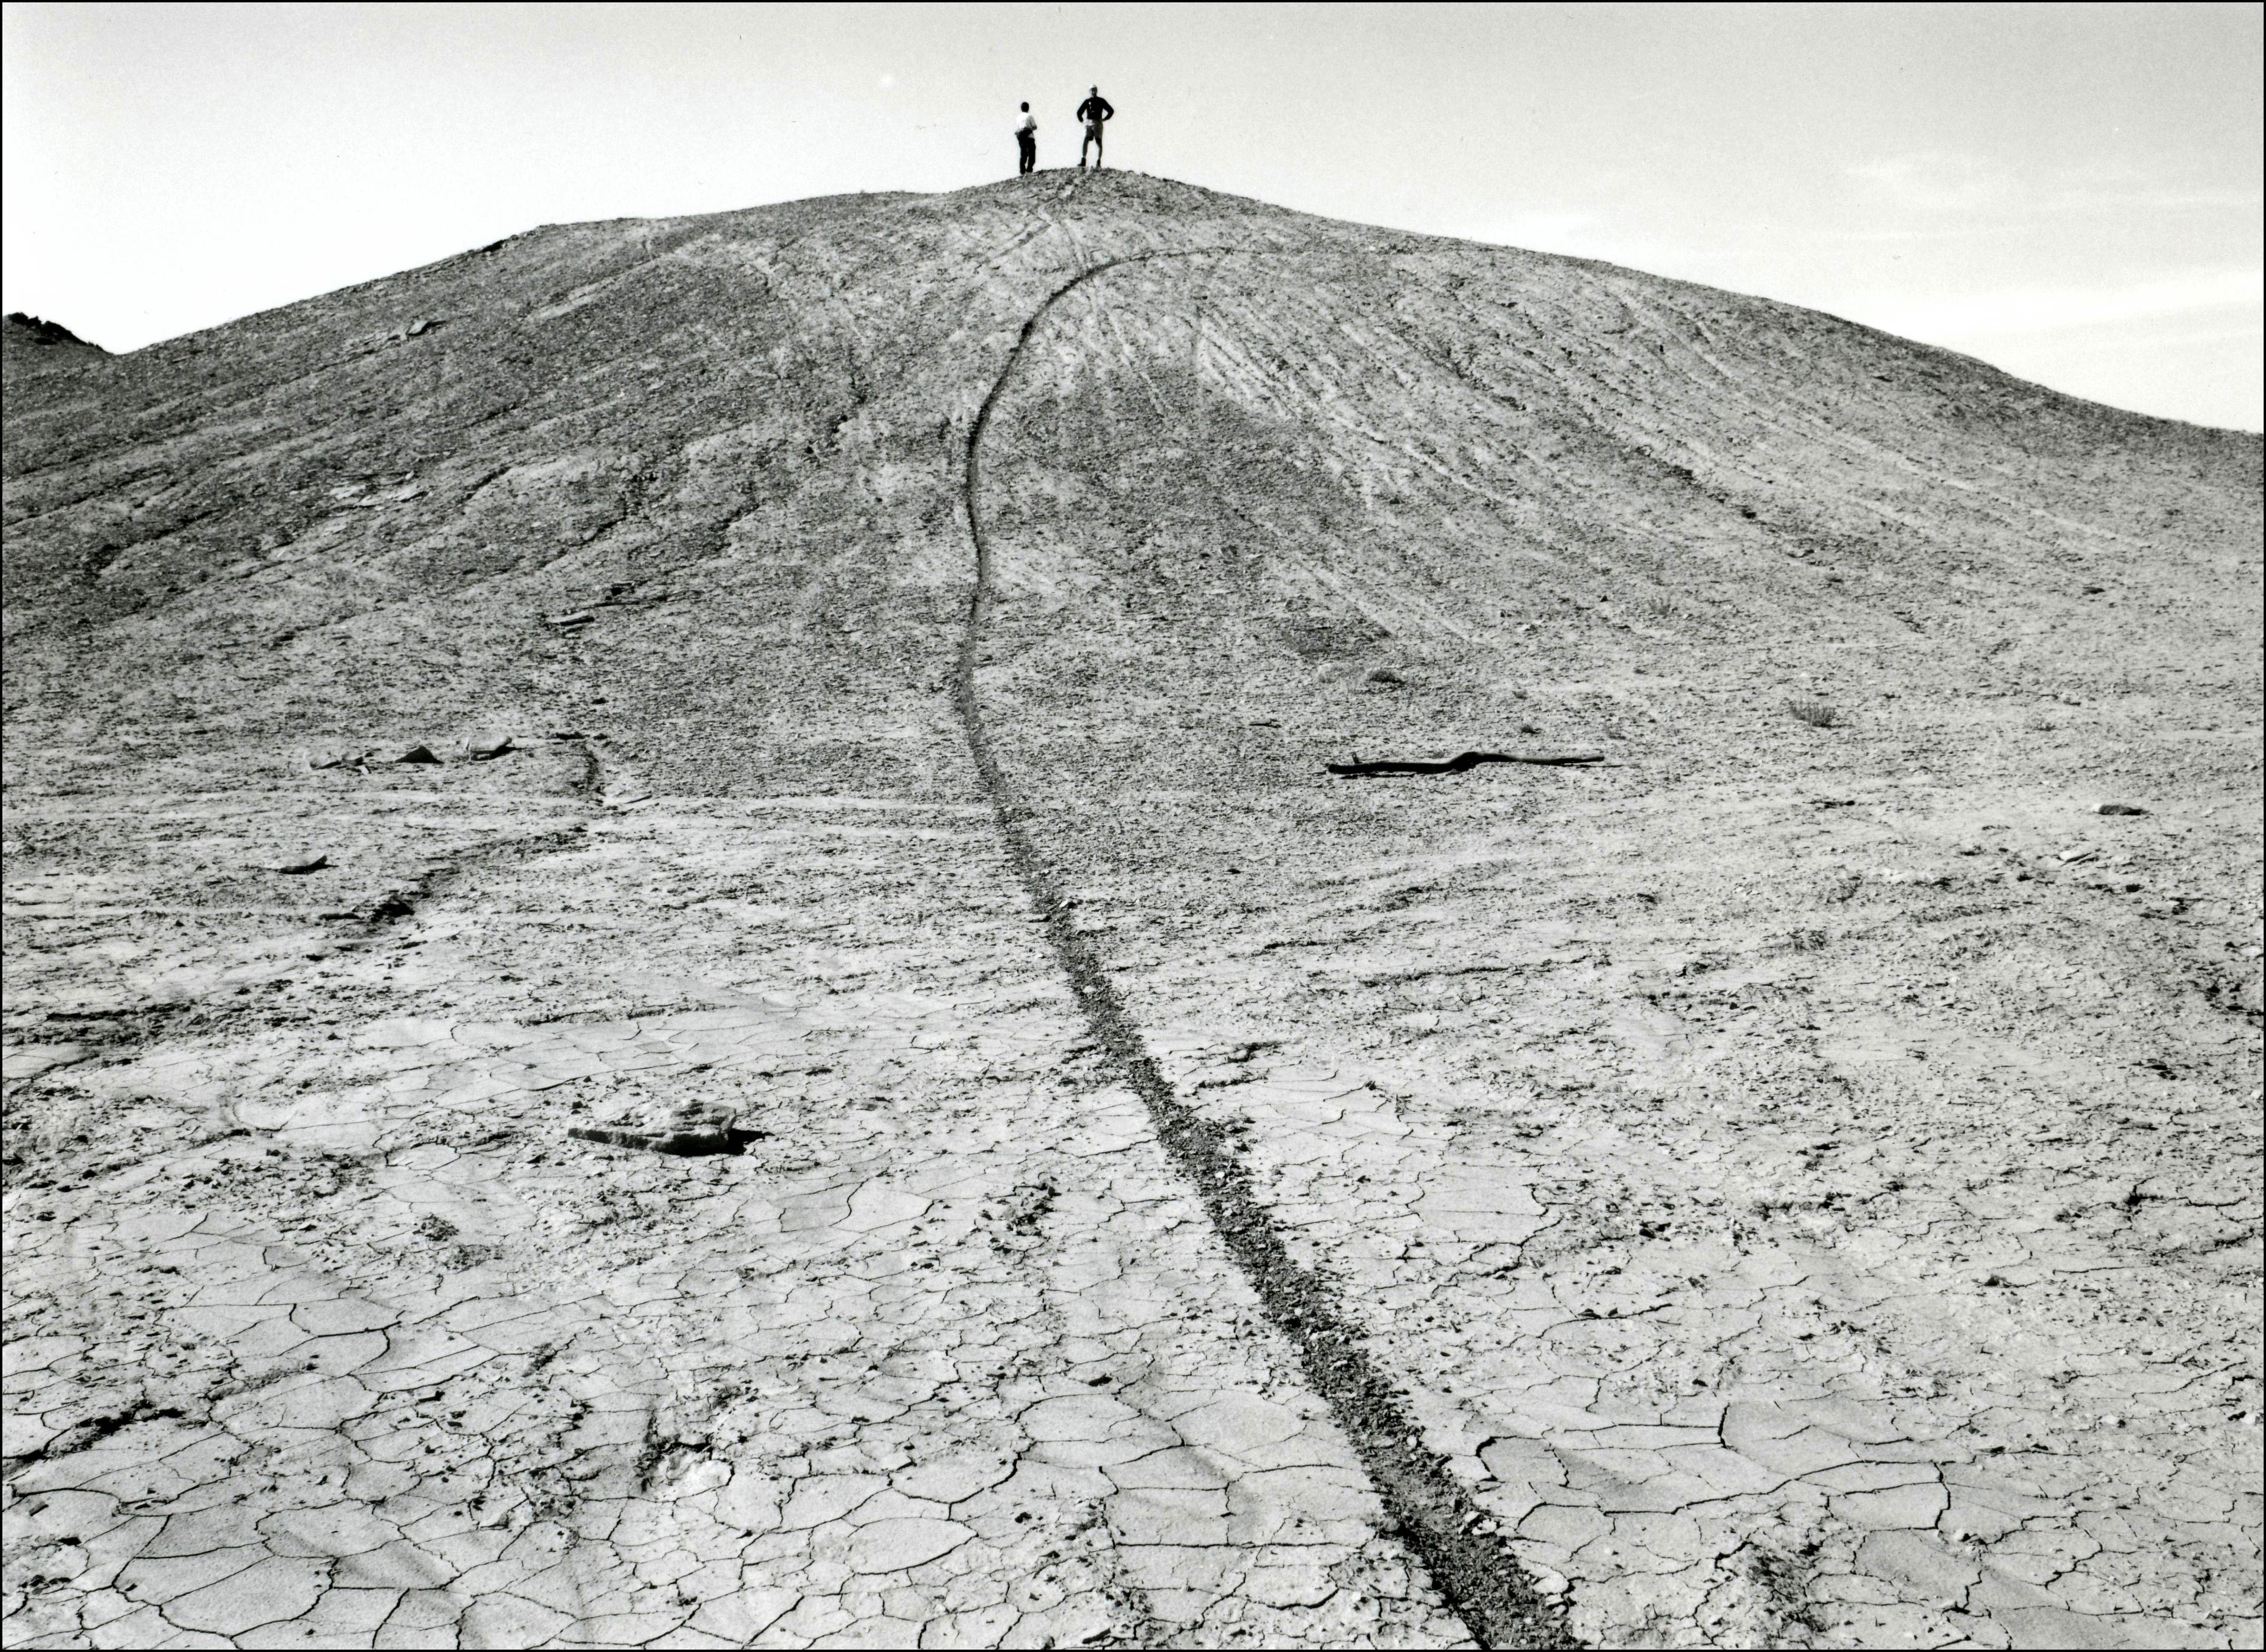 Two people standing on top of a hill in an area with cracked dirt and no vegetation. There is a single dirt bike track going up the hill.